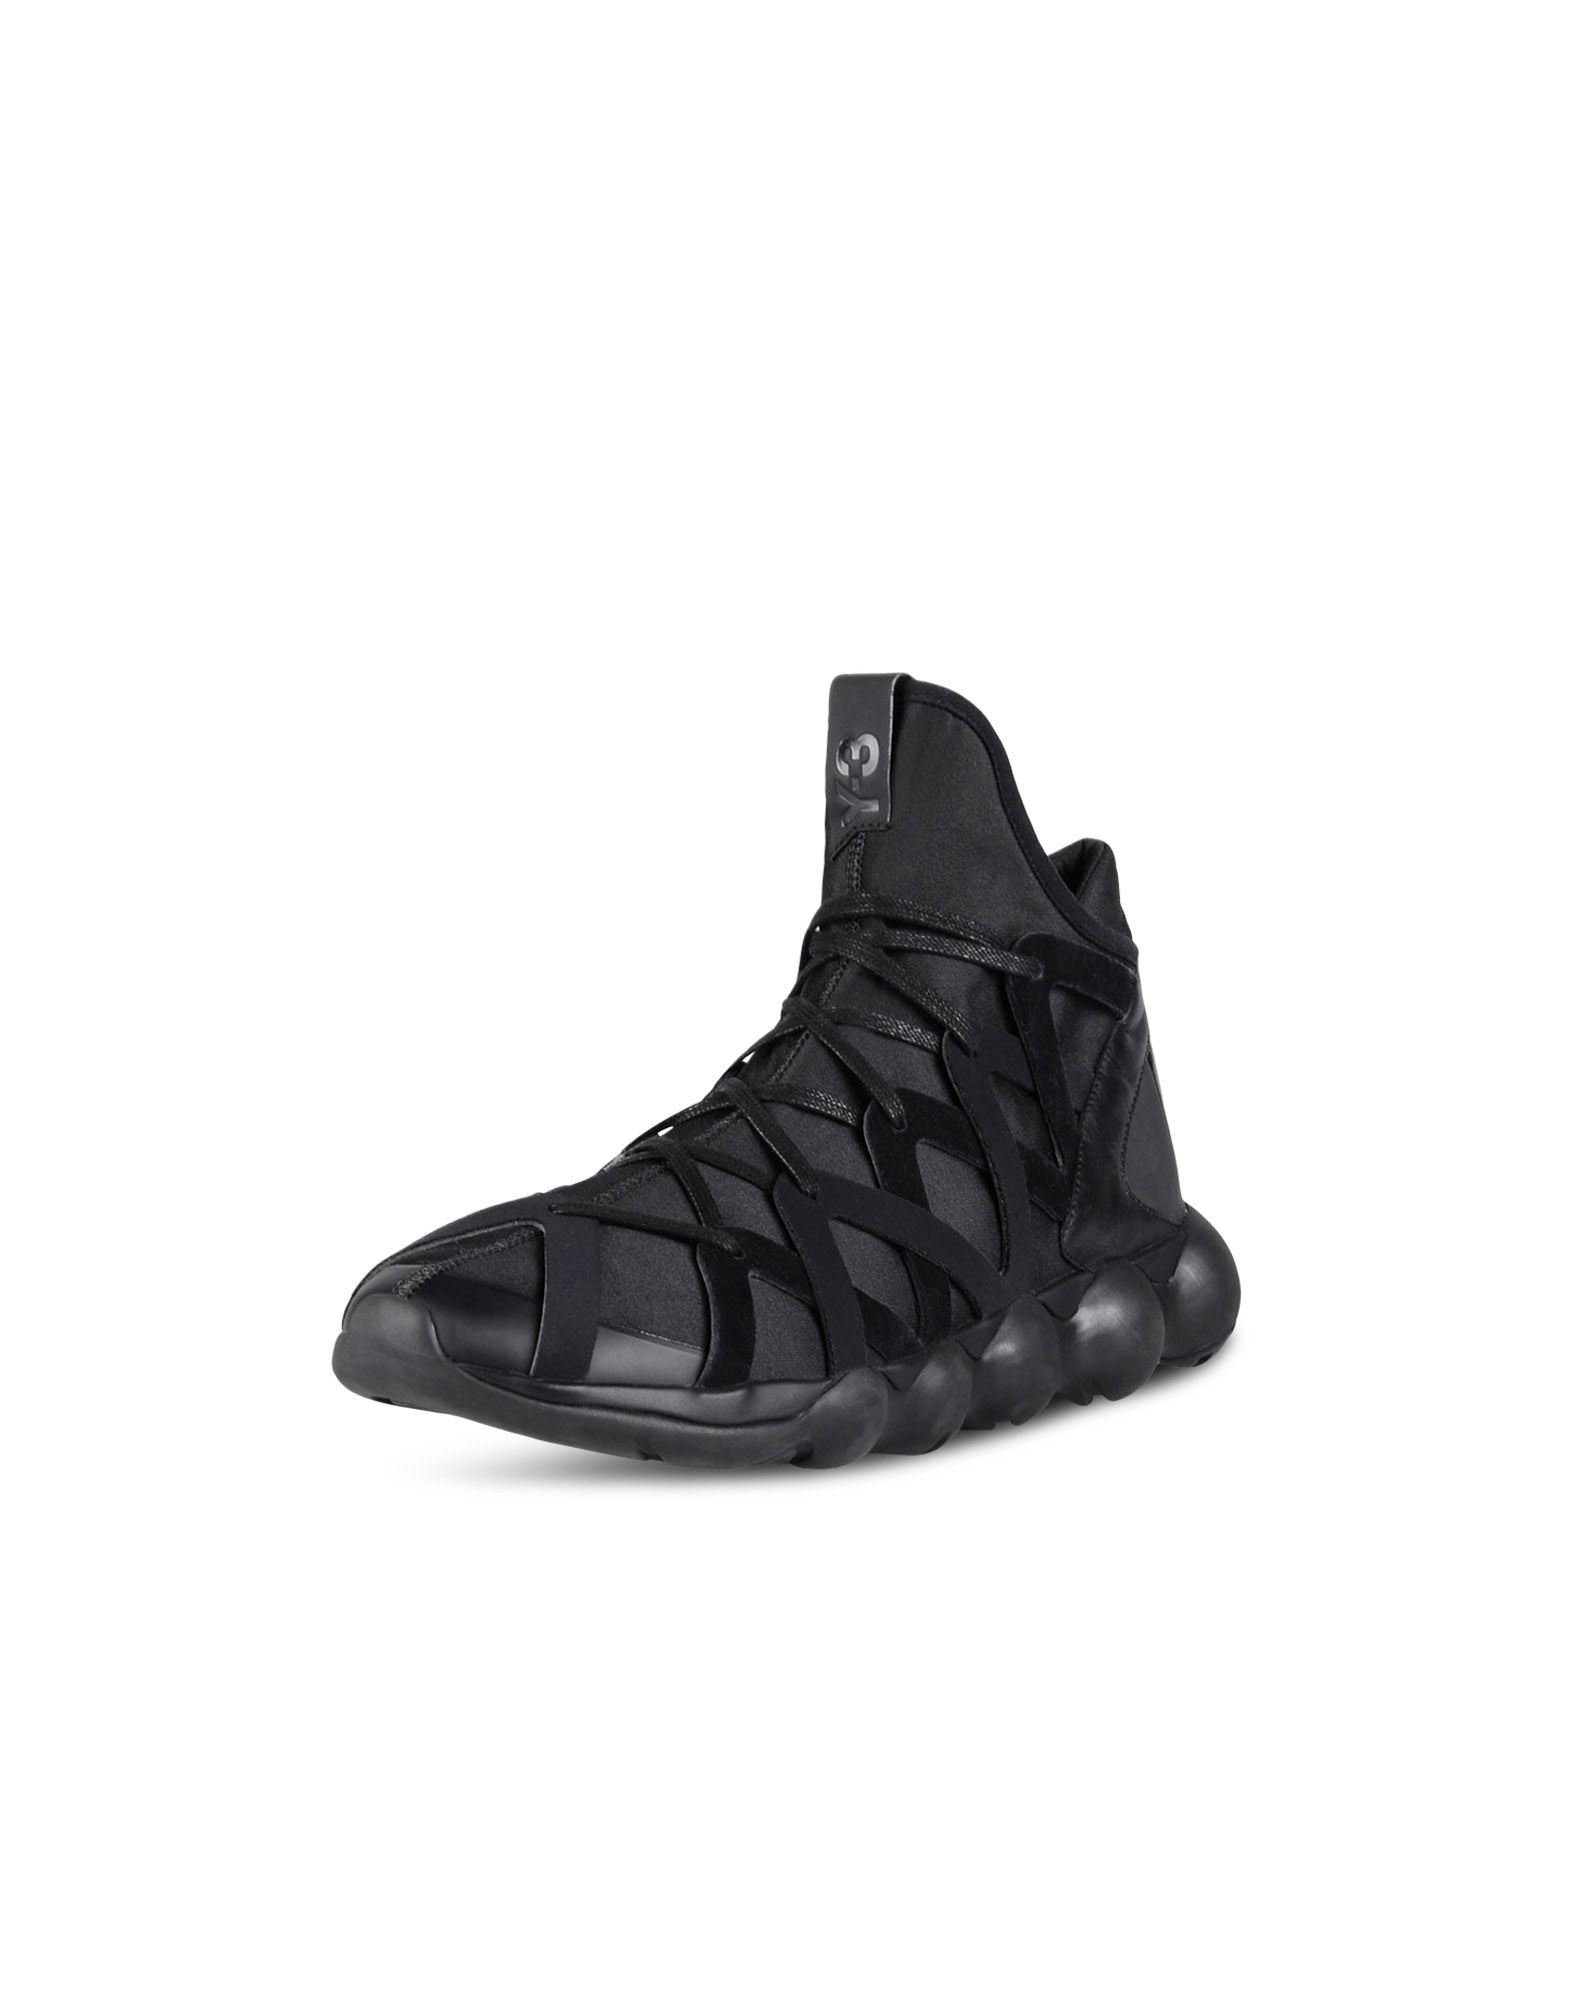 aefec15da2879 ... Y-3 Y-3 KYUJO HIGH High-top sneakers Man ...